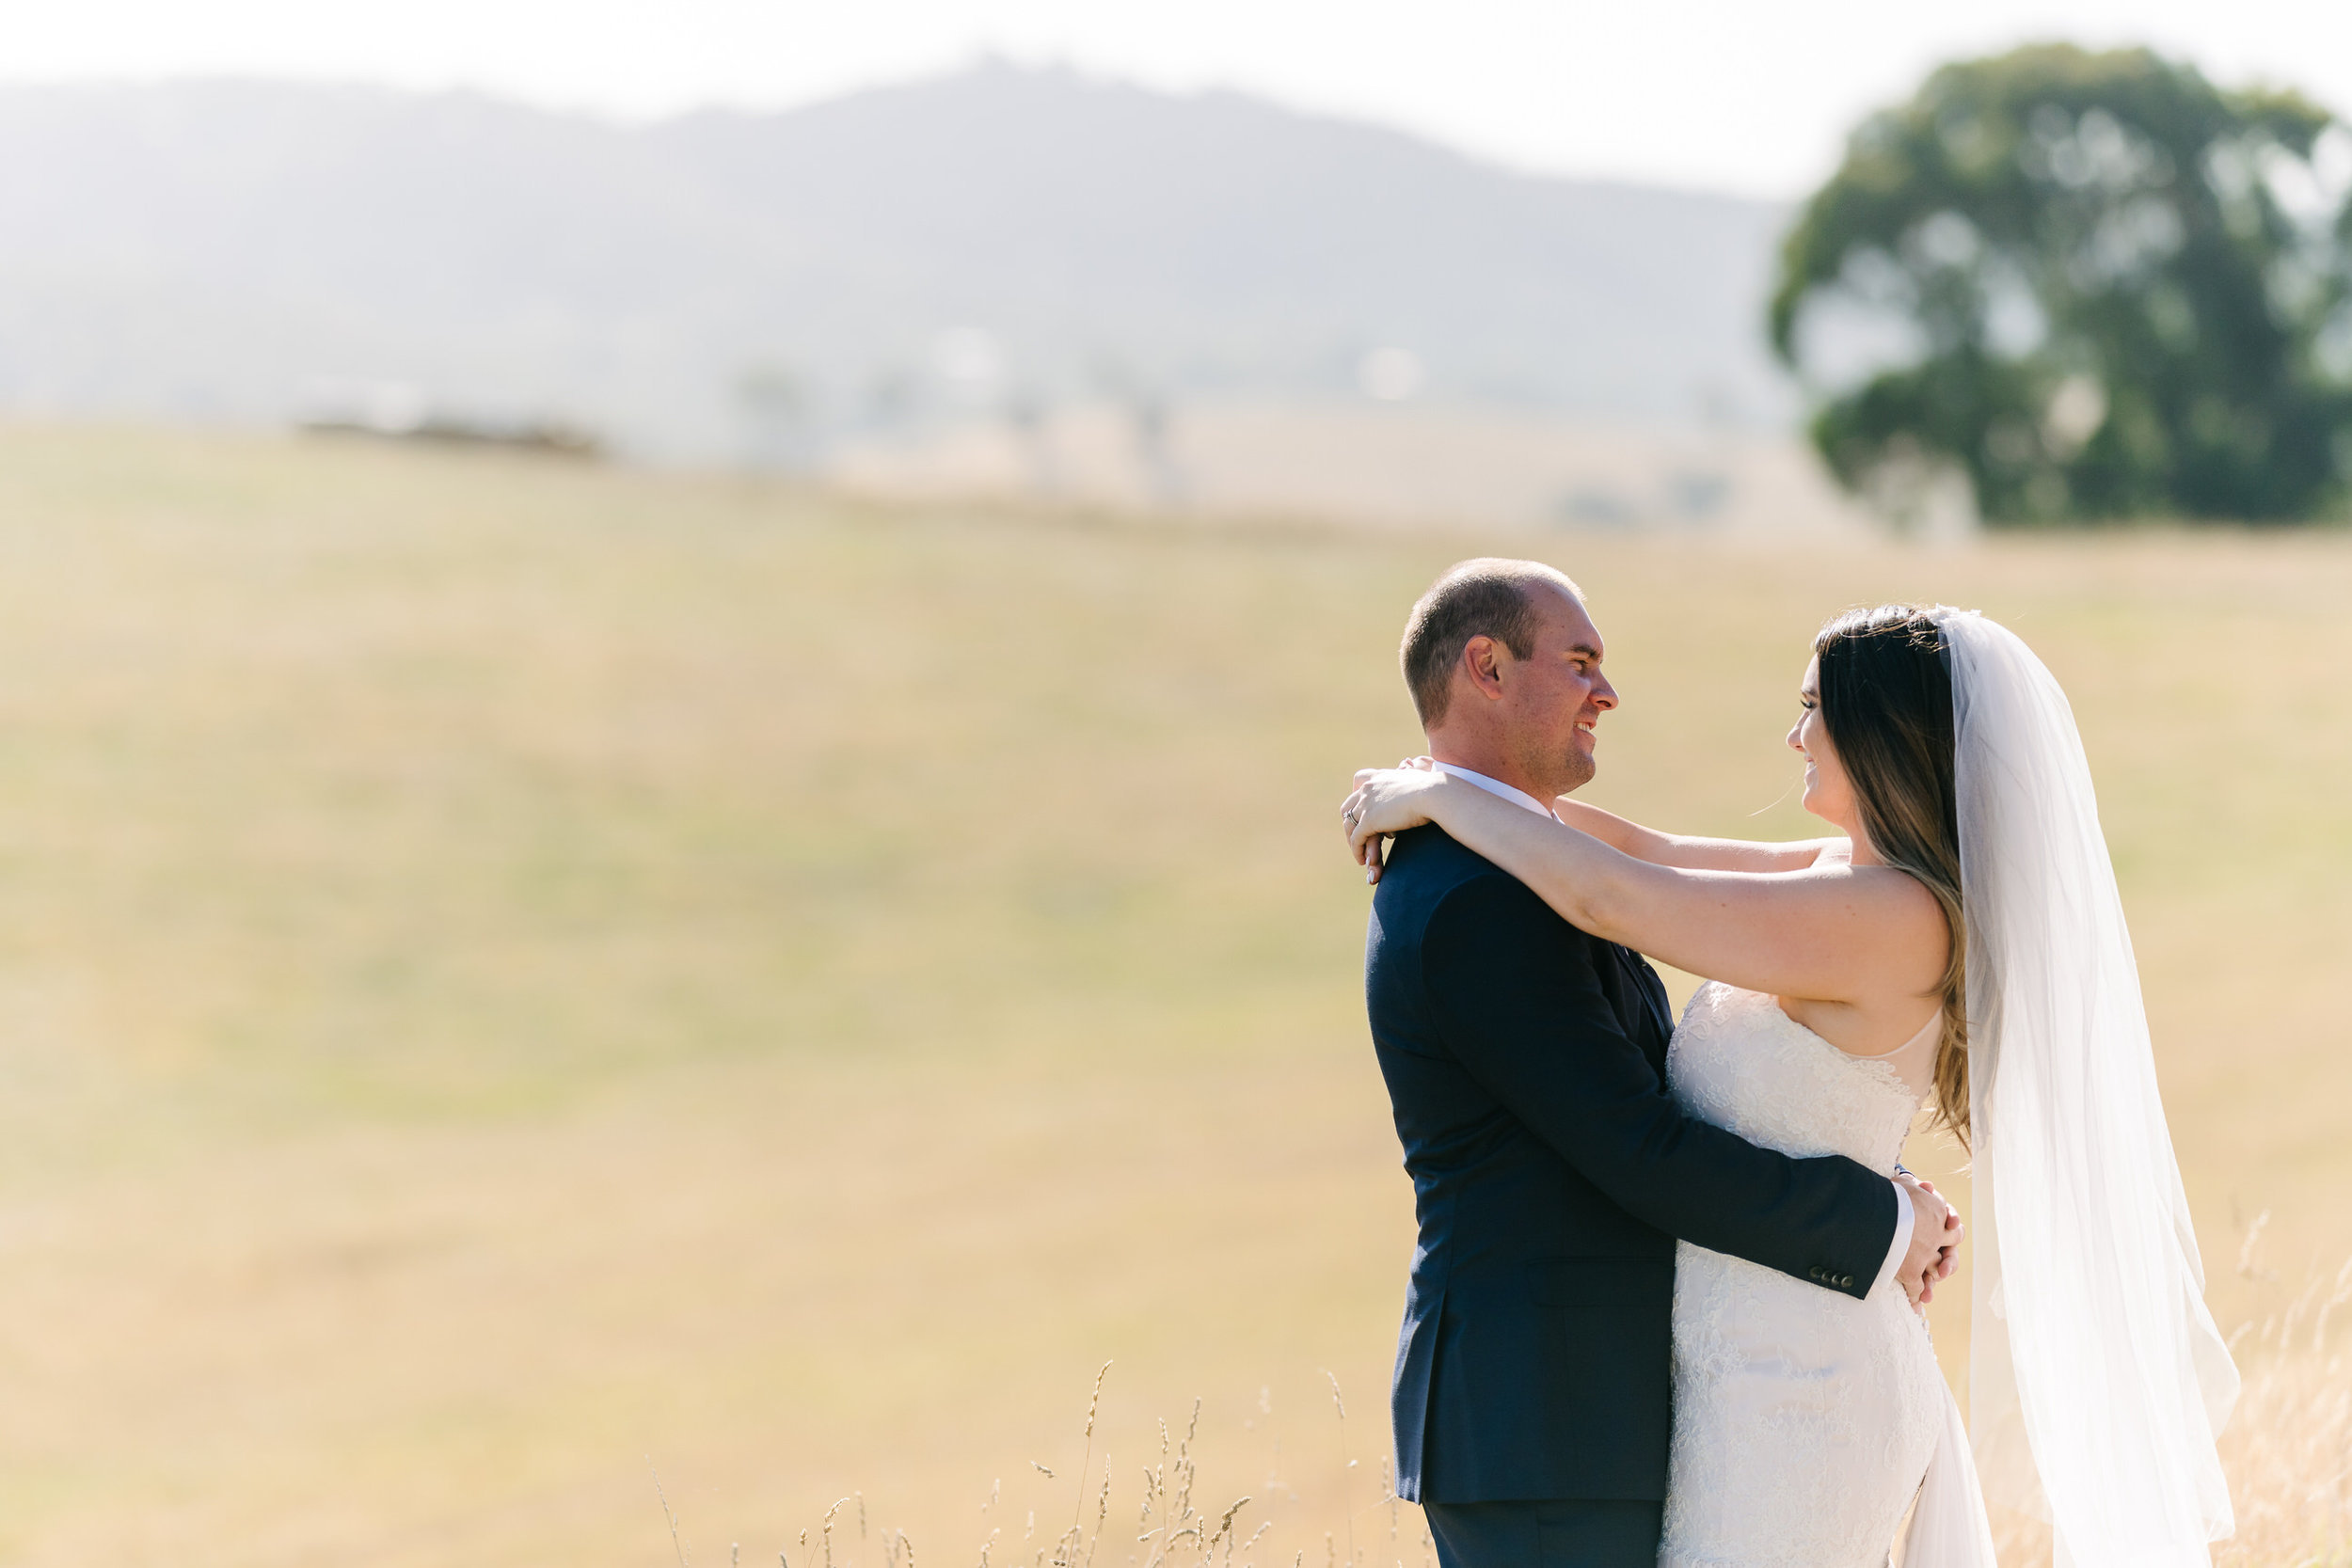 Justin_And_Jim_Photography_Balgownie_Winery_Wedding39.JPG